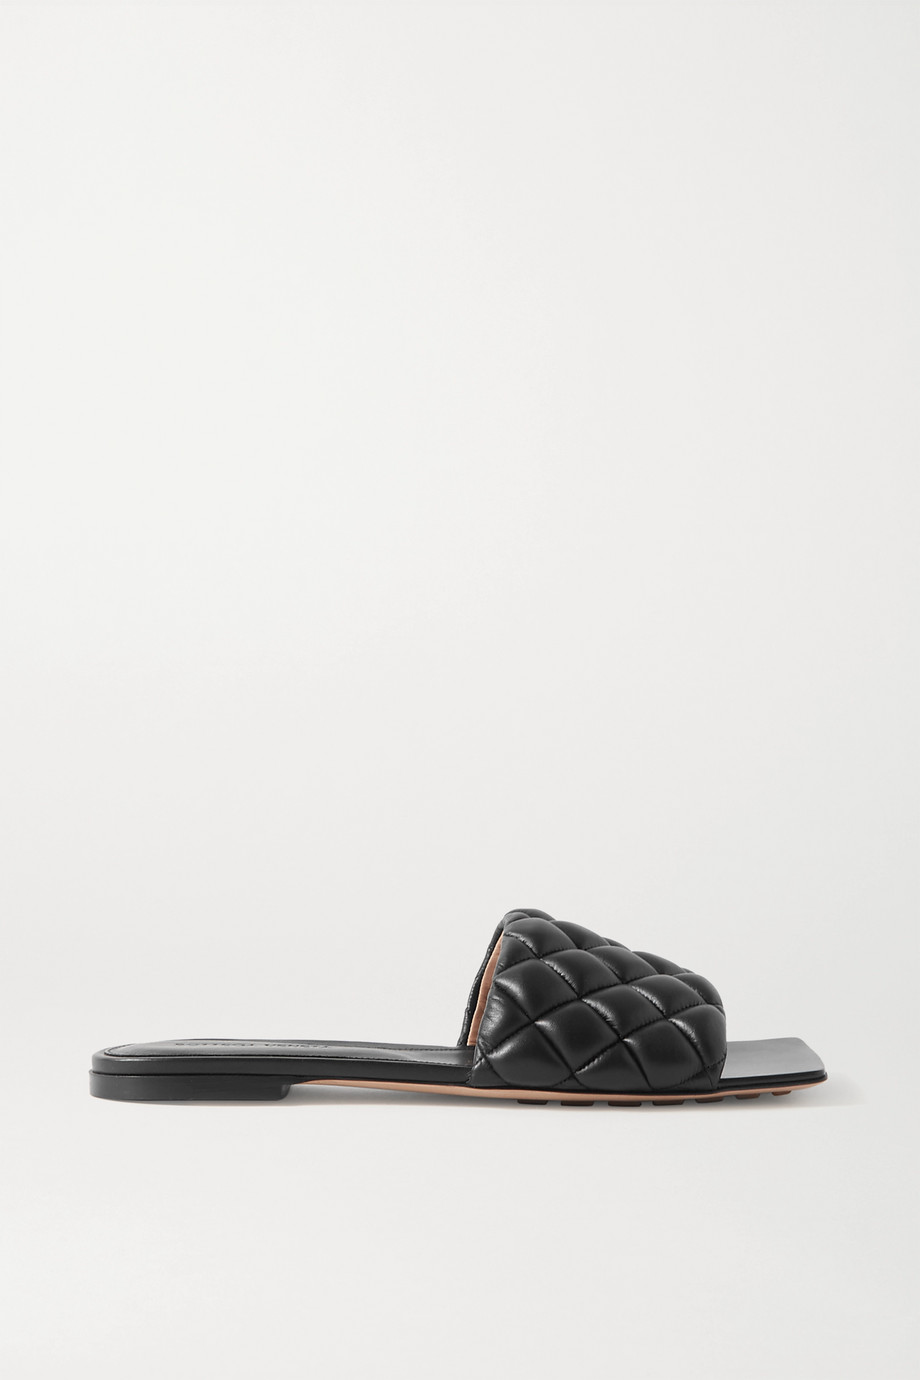 BOTTEGA VENETA Quilted leather slides